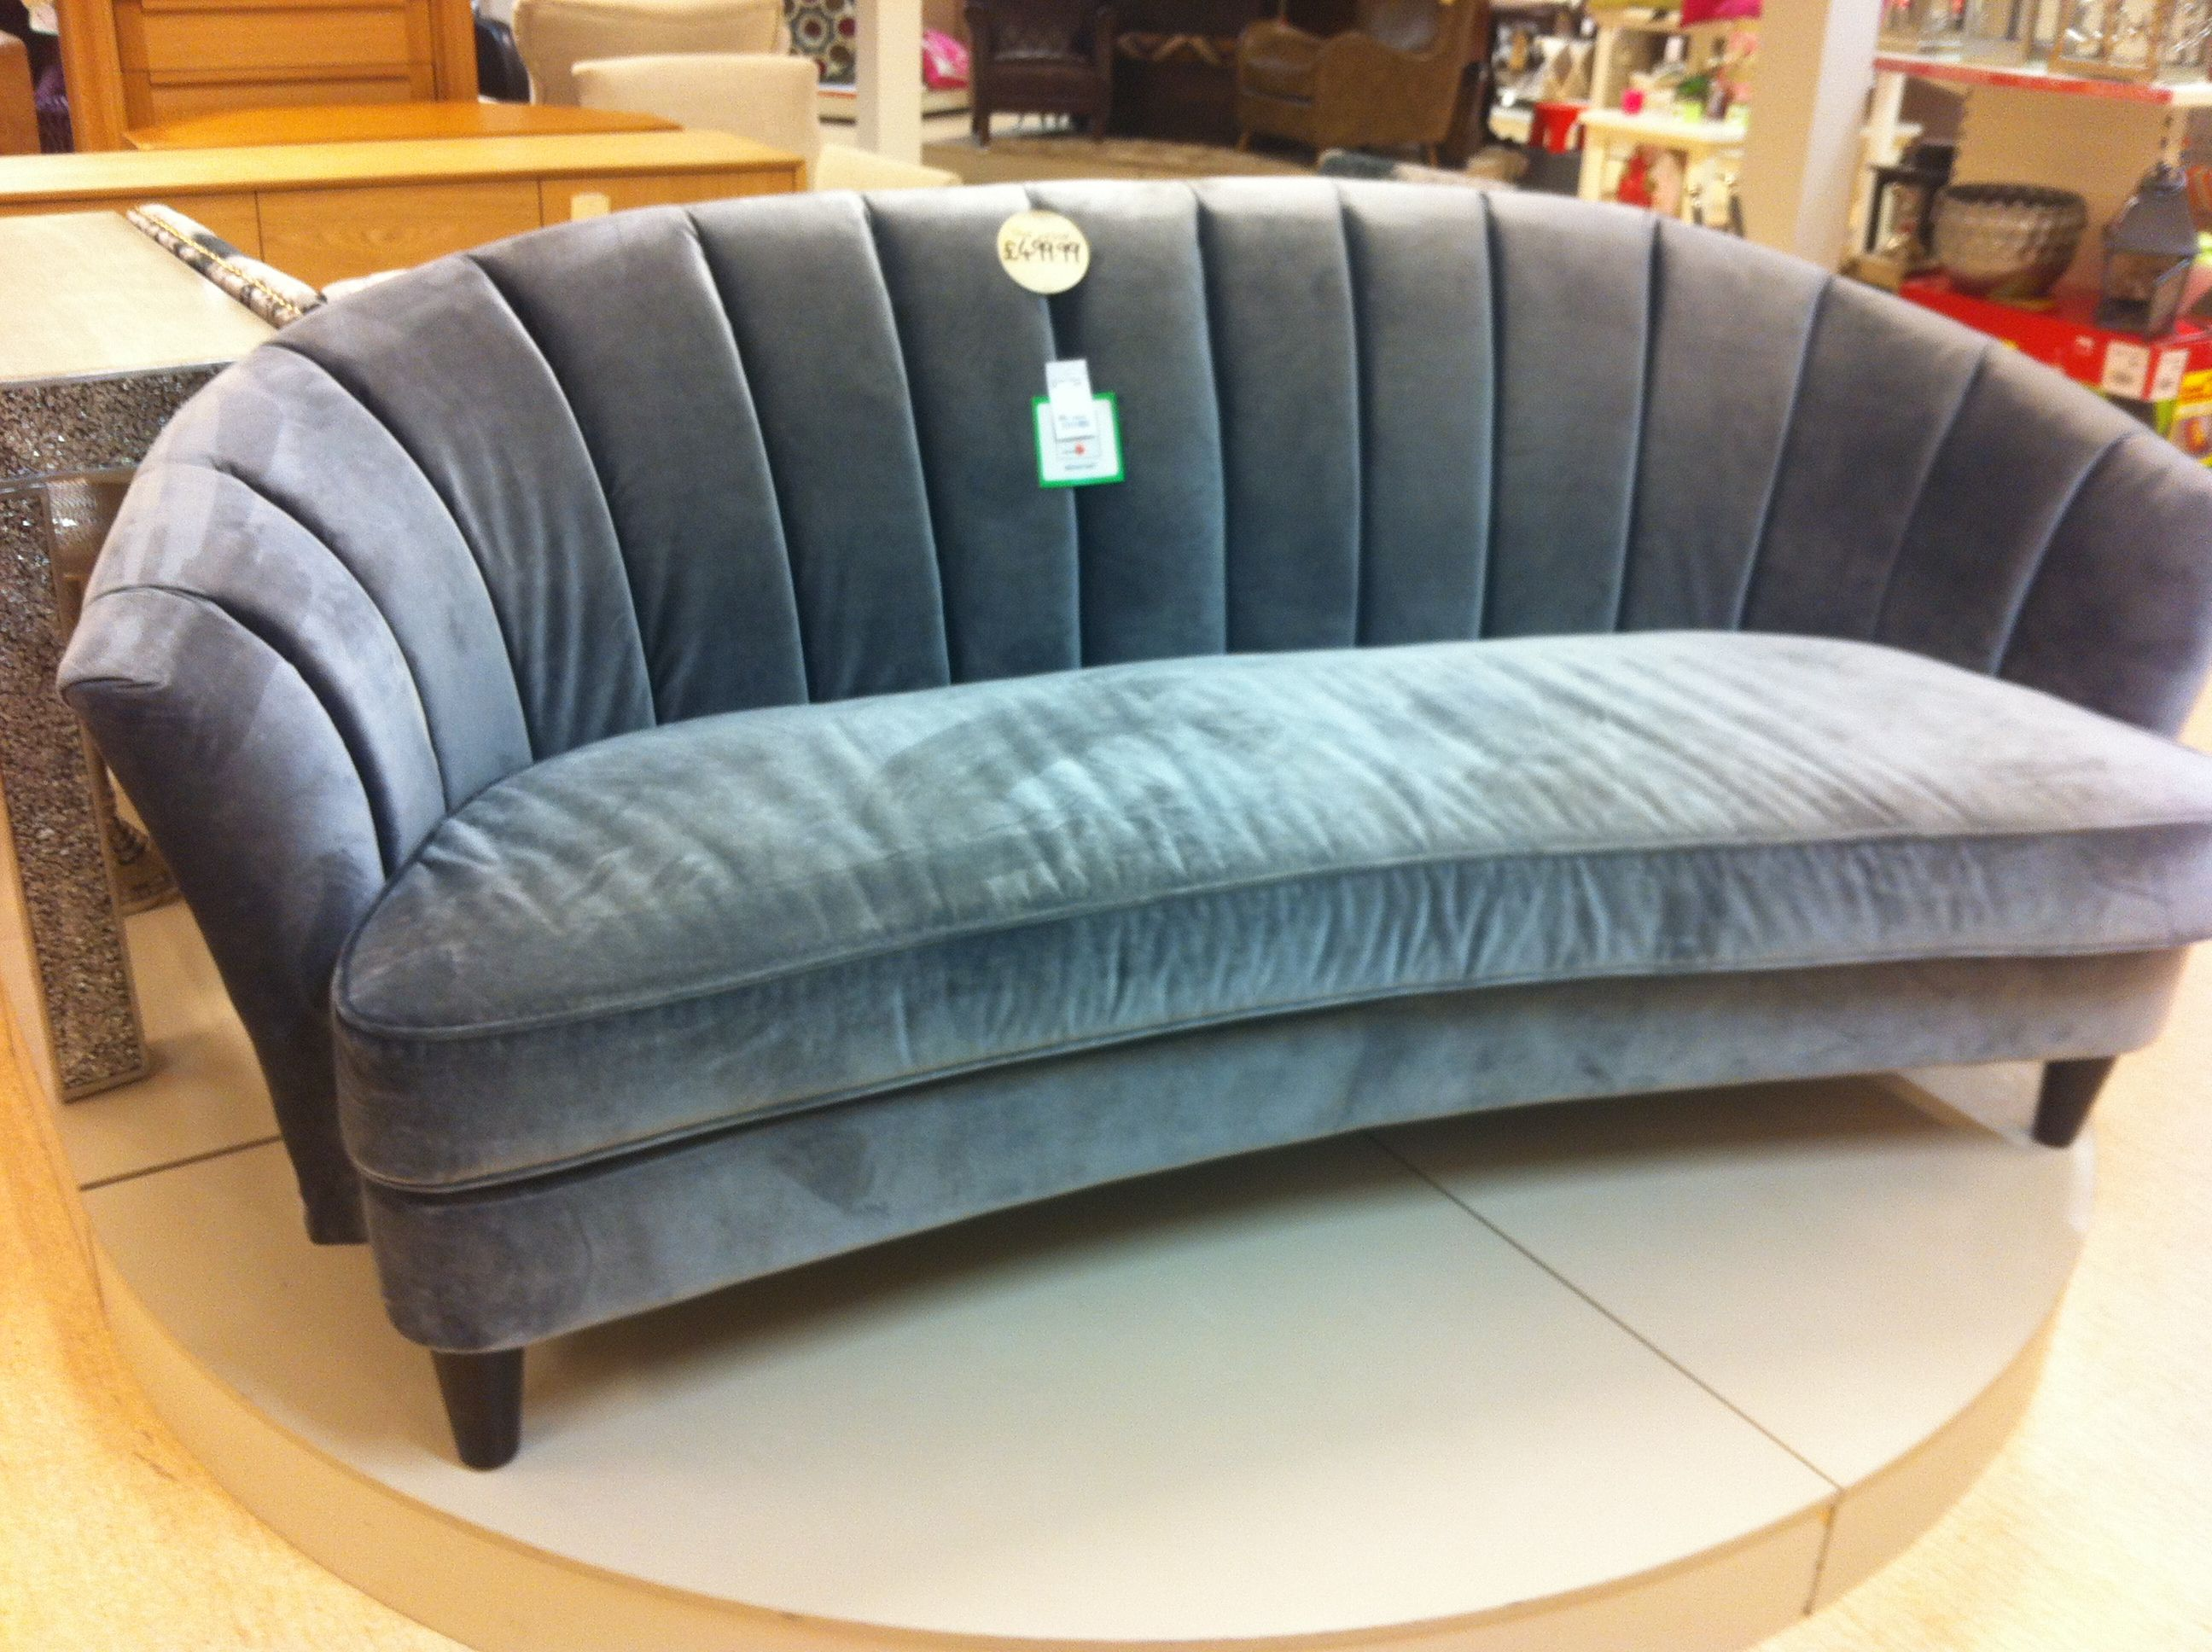 Sofa from home sense Dans le salon Pinterest